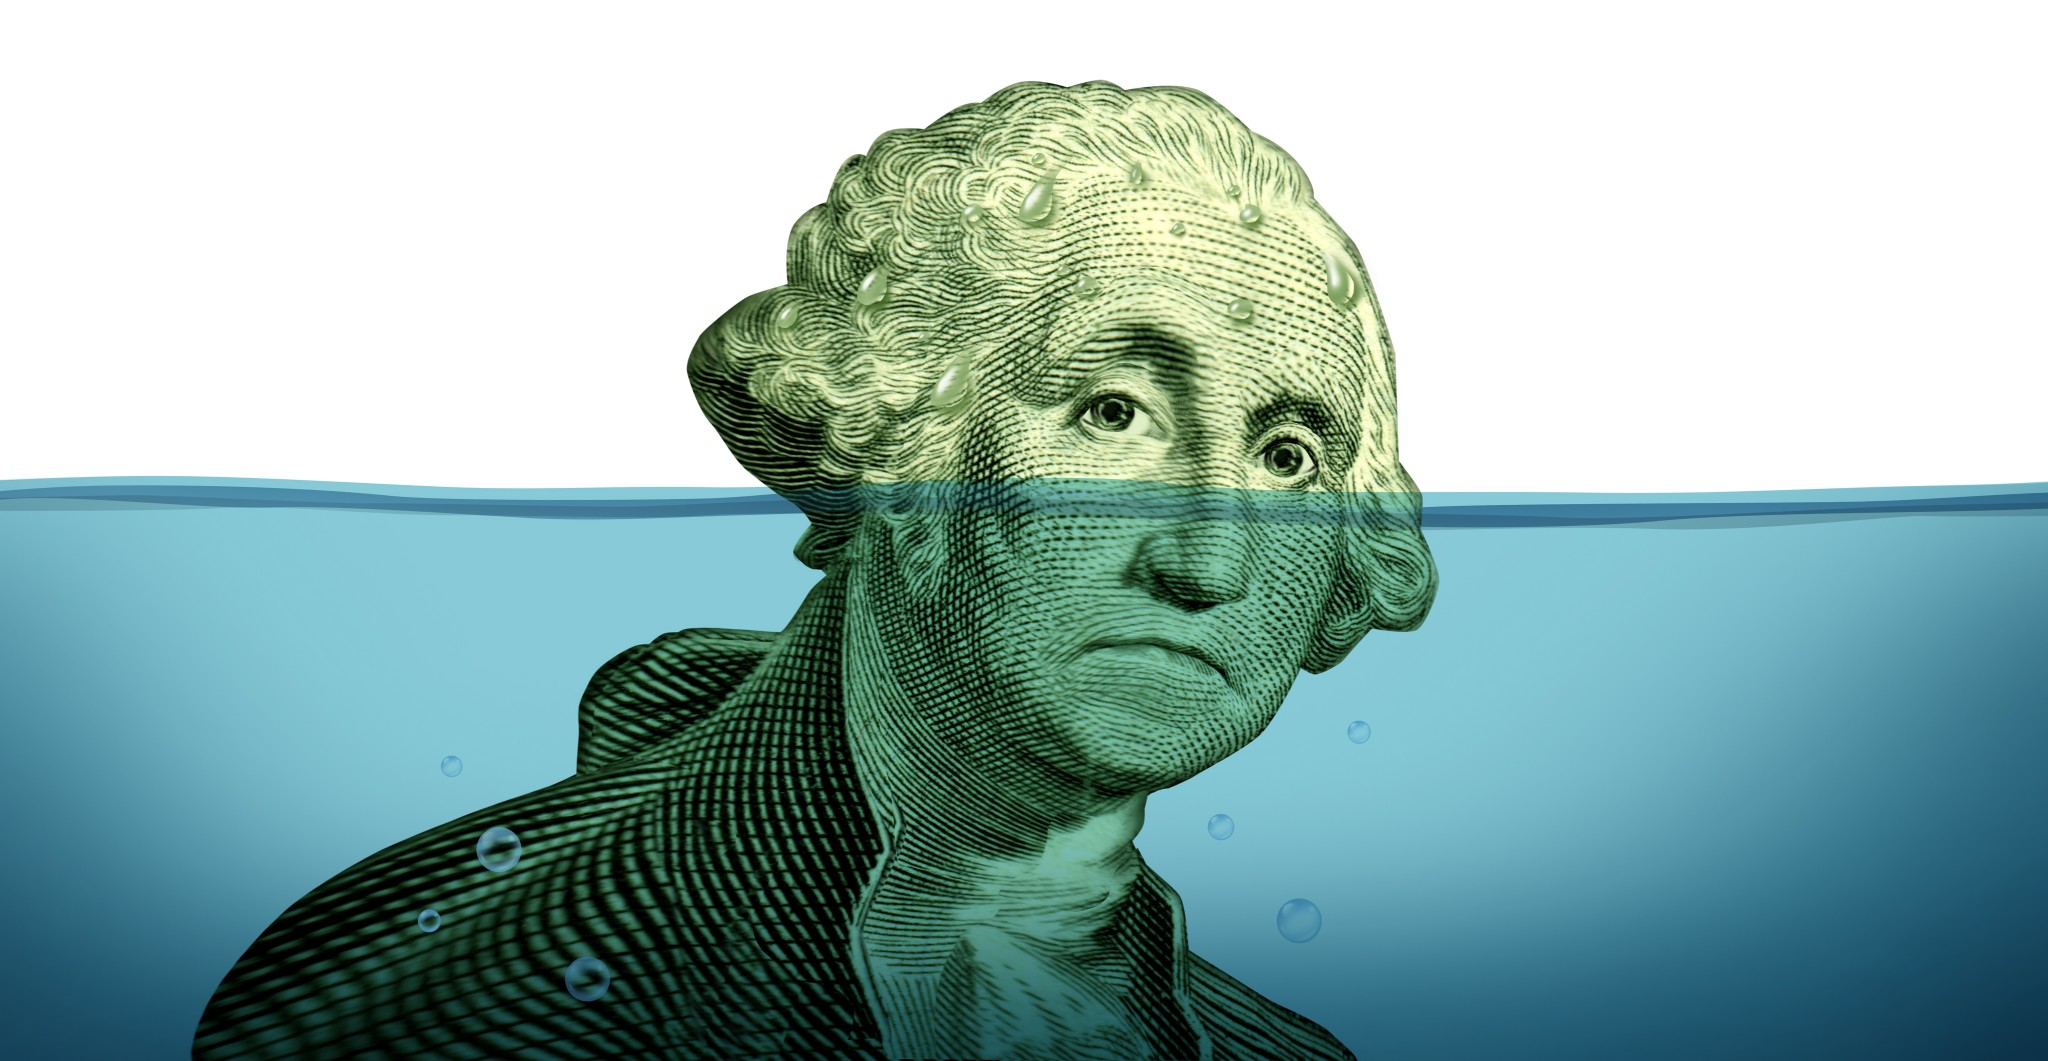 Everyday Economics: Because water is not a public good, neither Ireland nor Detroit need provide it without charging.